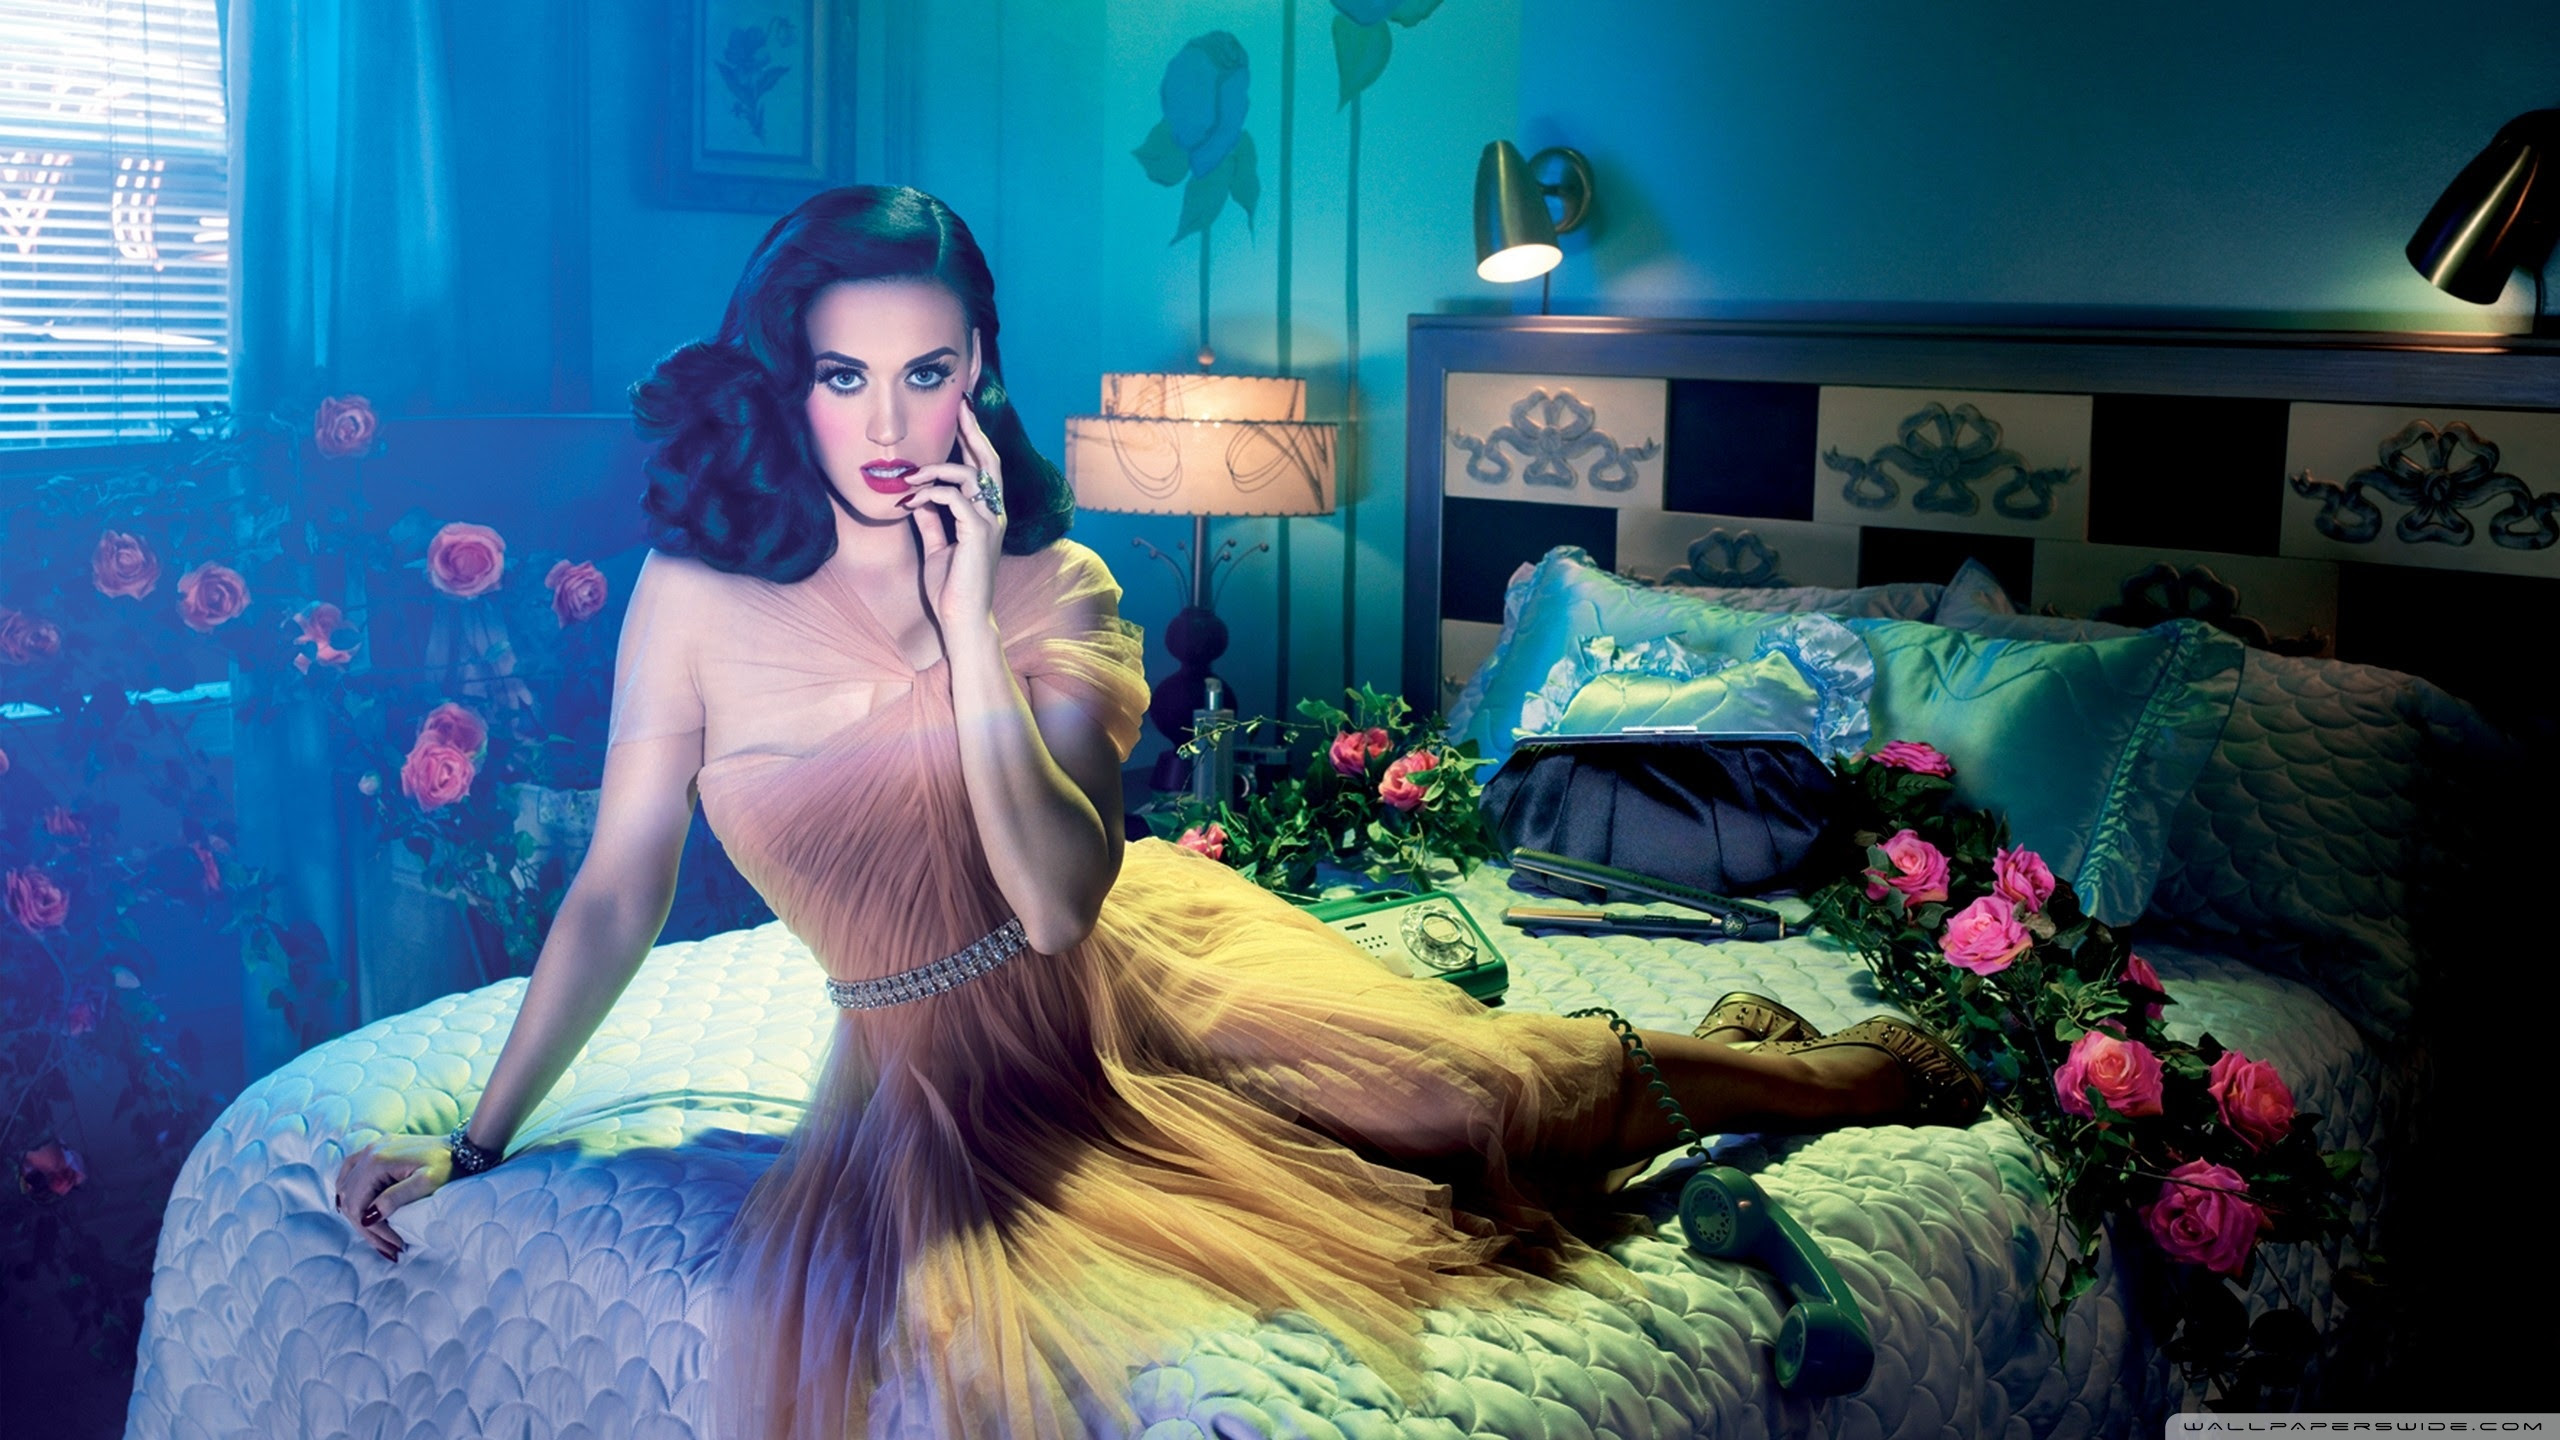 Katy Perry Pin Up Girl Ultra Hd Desktop Background Wallpaper For